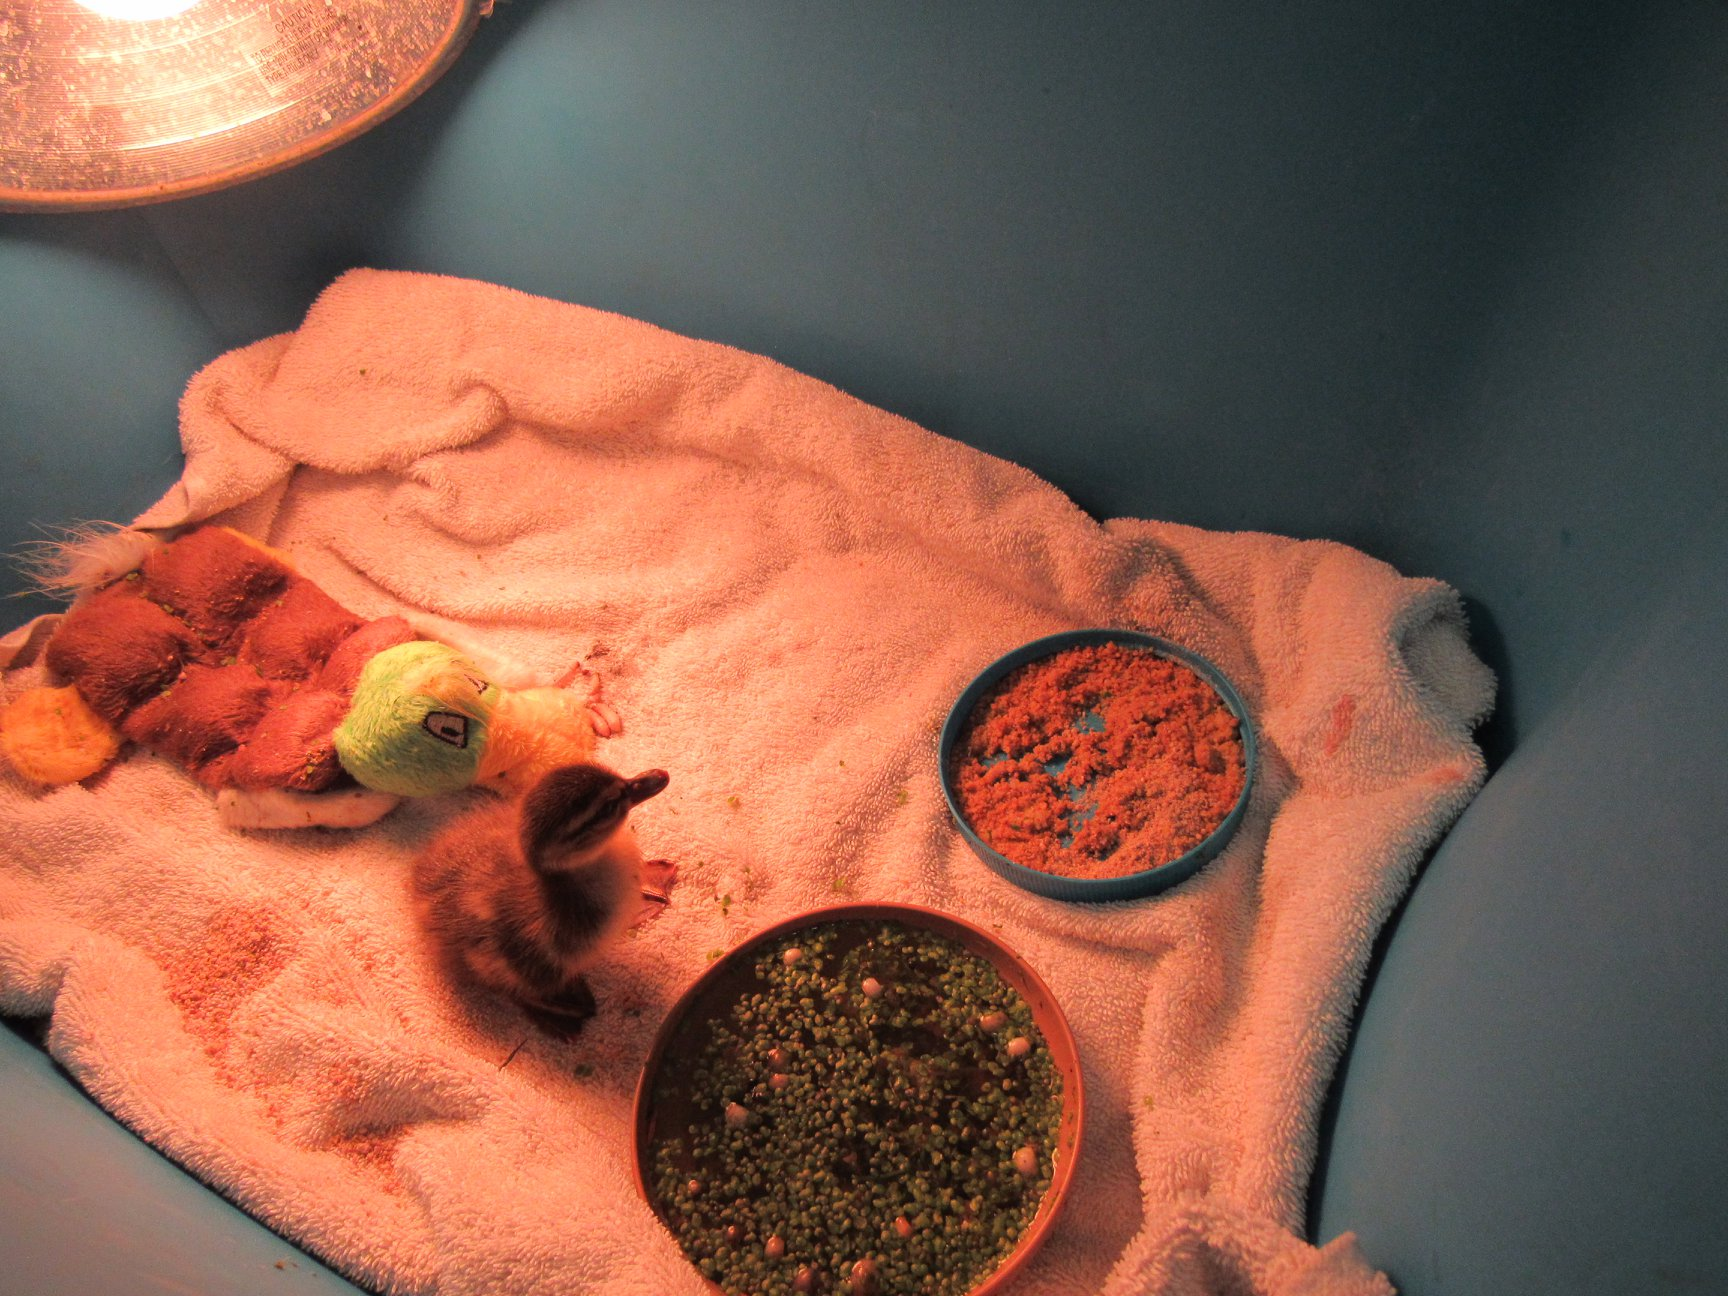 Mallard duckling arrived as a single baby...we now have 18 mallard duckings to keep each other company.